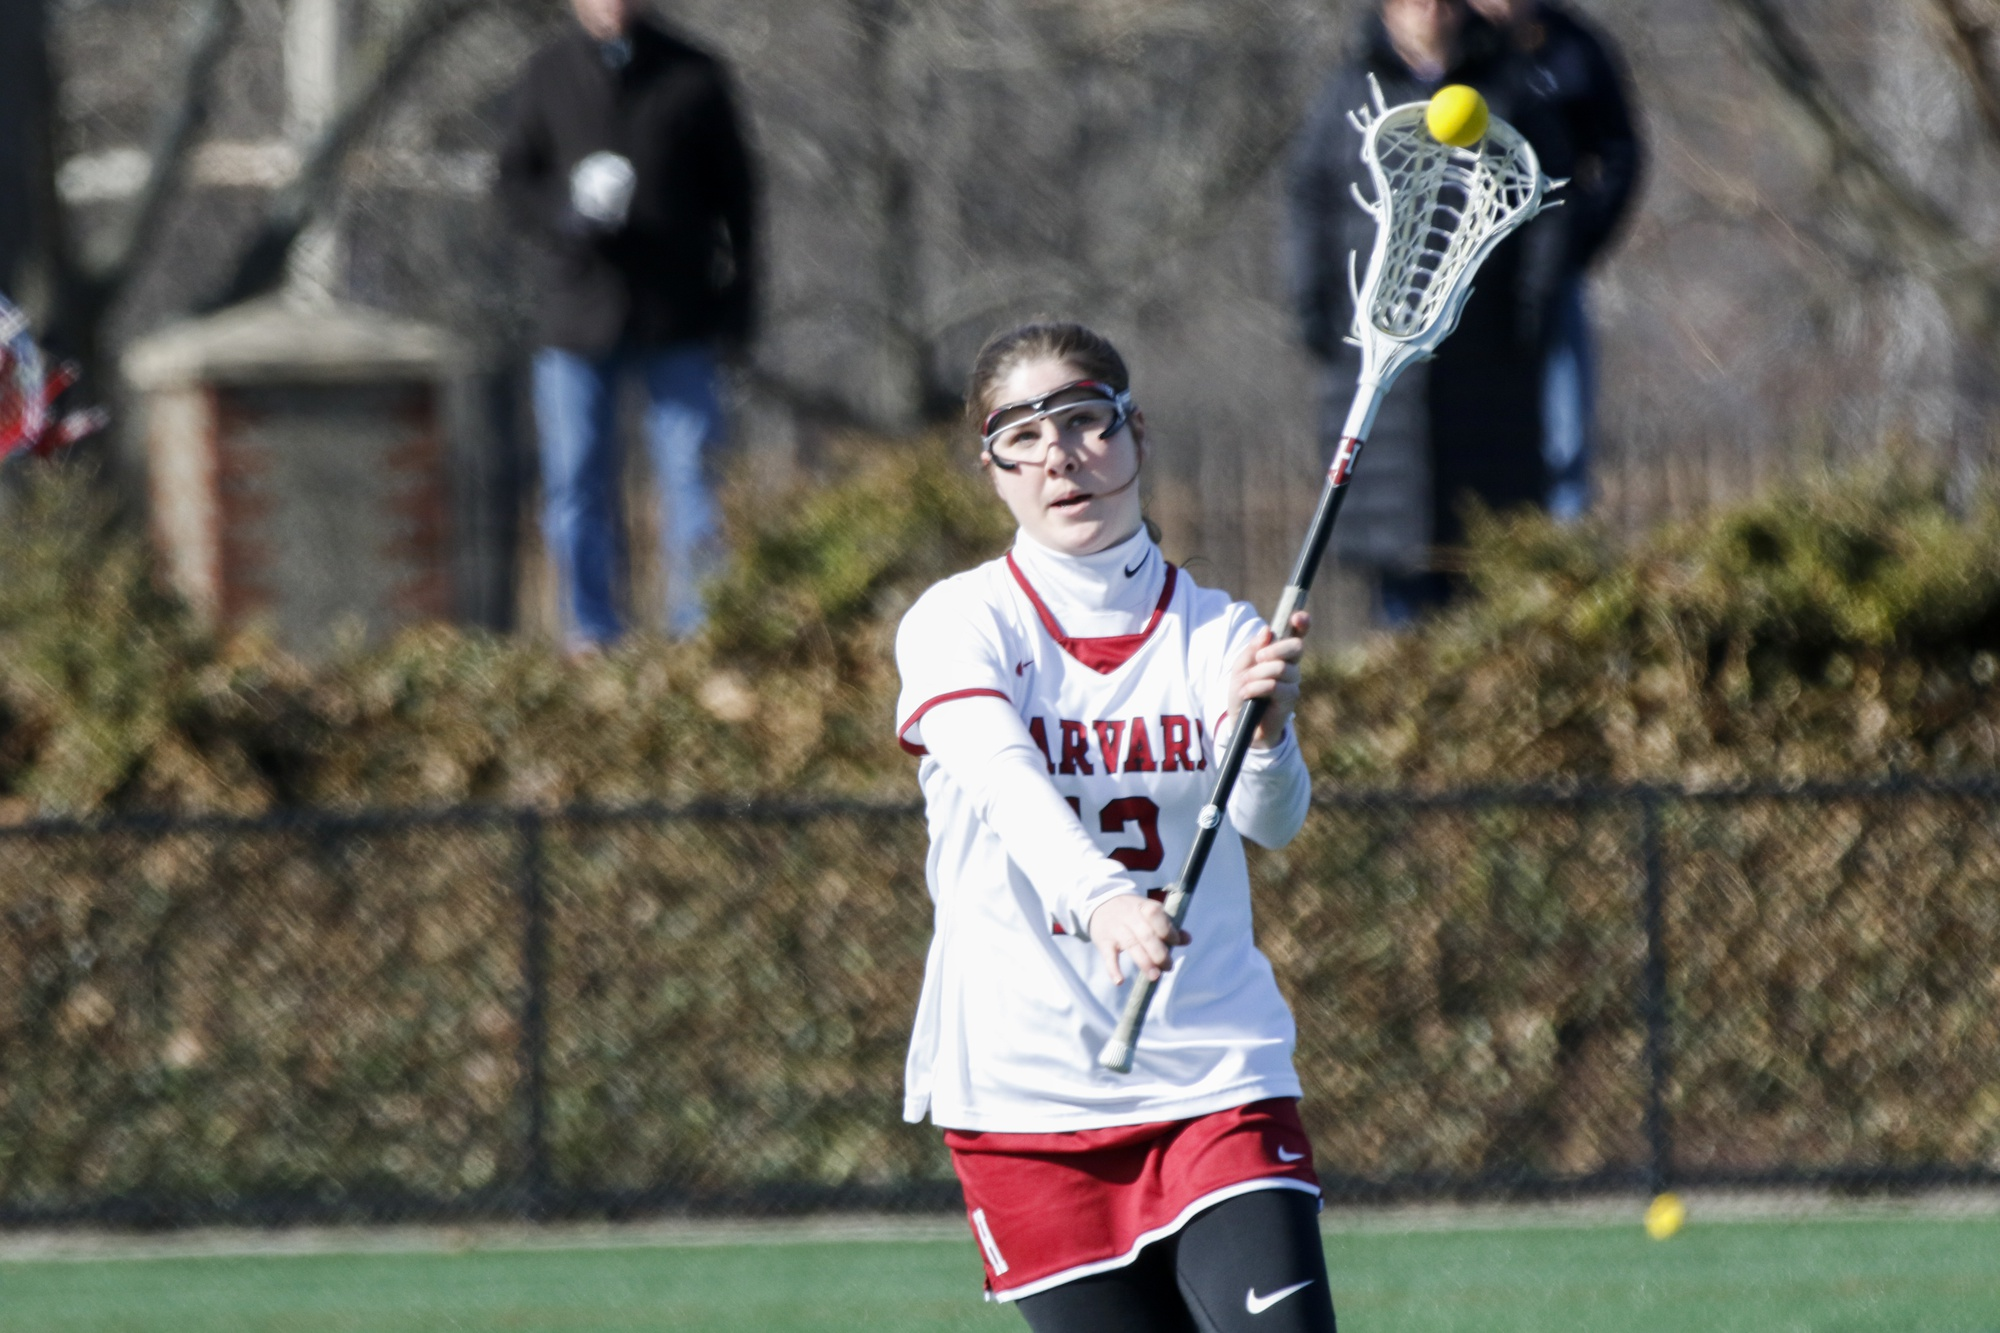 Senior attacker Eliza Guild recorded two ground balls in Harvard's 22-17 loss to UMass.